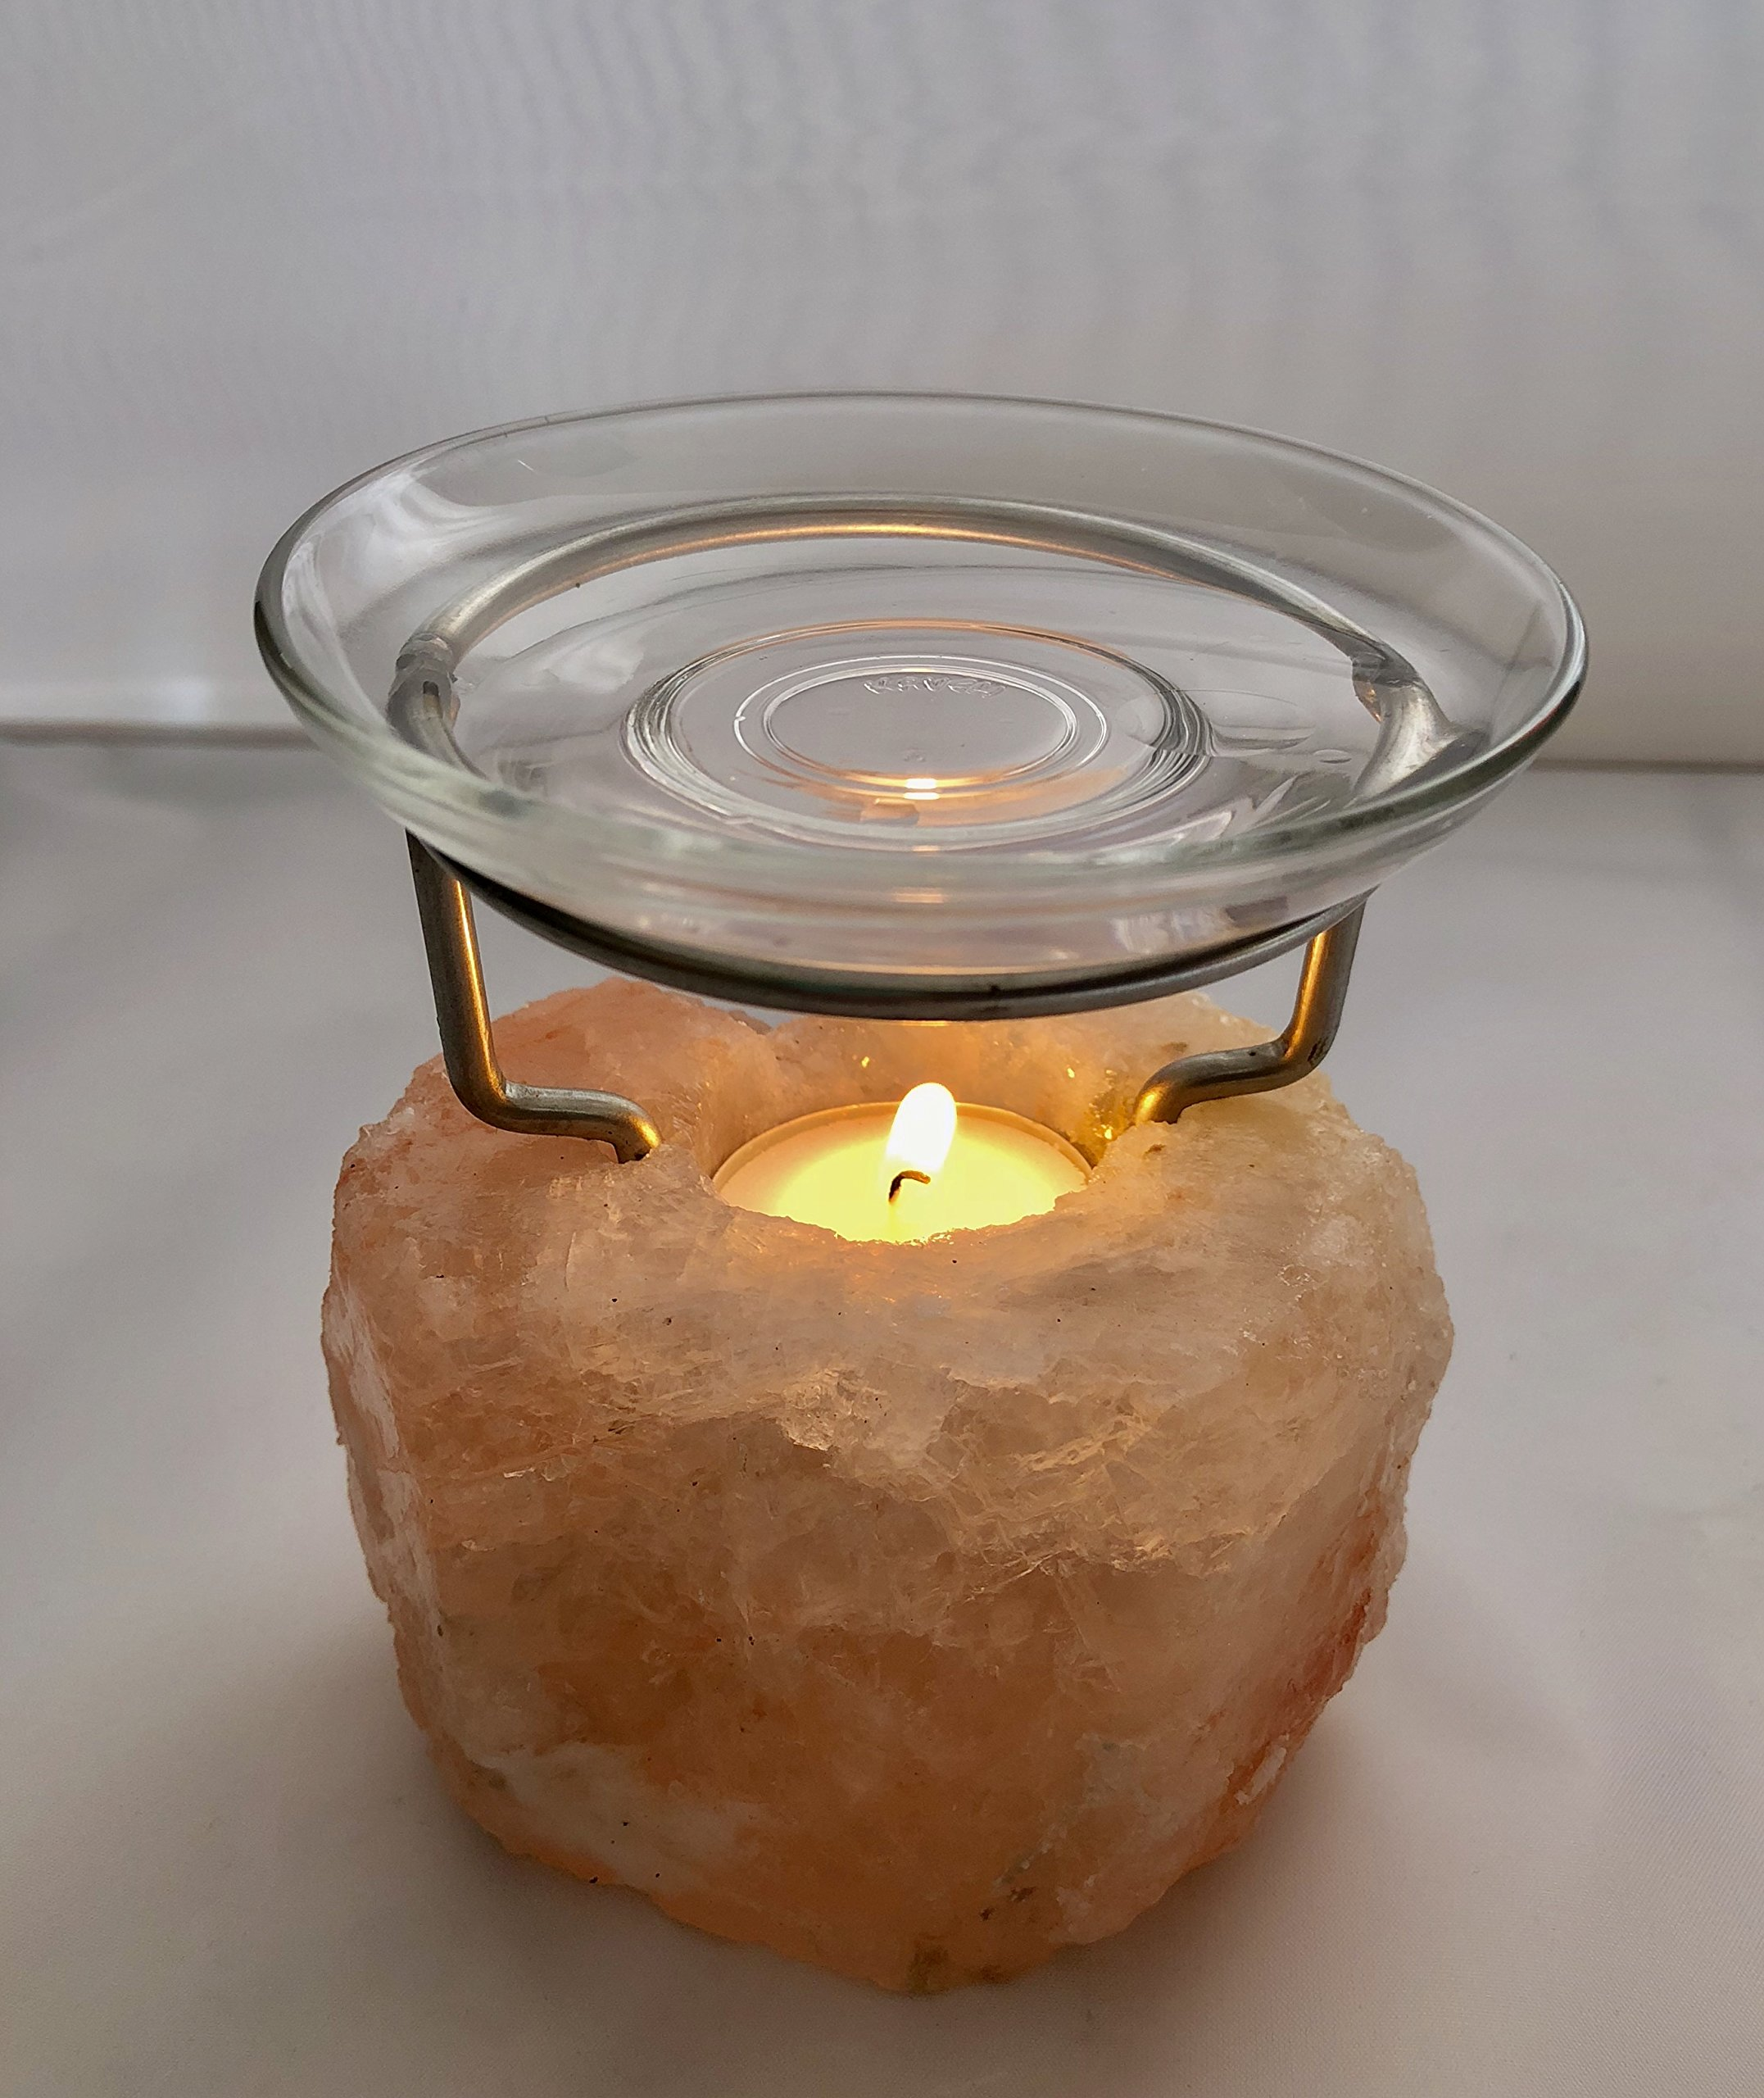 Brighter Living Organics: Himalayan Glow Crystal Salt Lamp |Tealight |Candle Holder | Oil Diffuser | Hand Carved |Natural Shaped | (Aromatherapy)